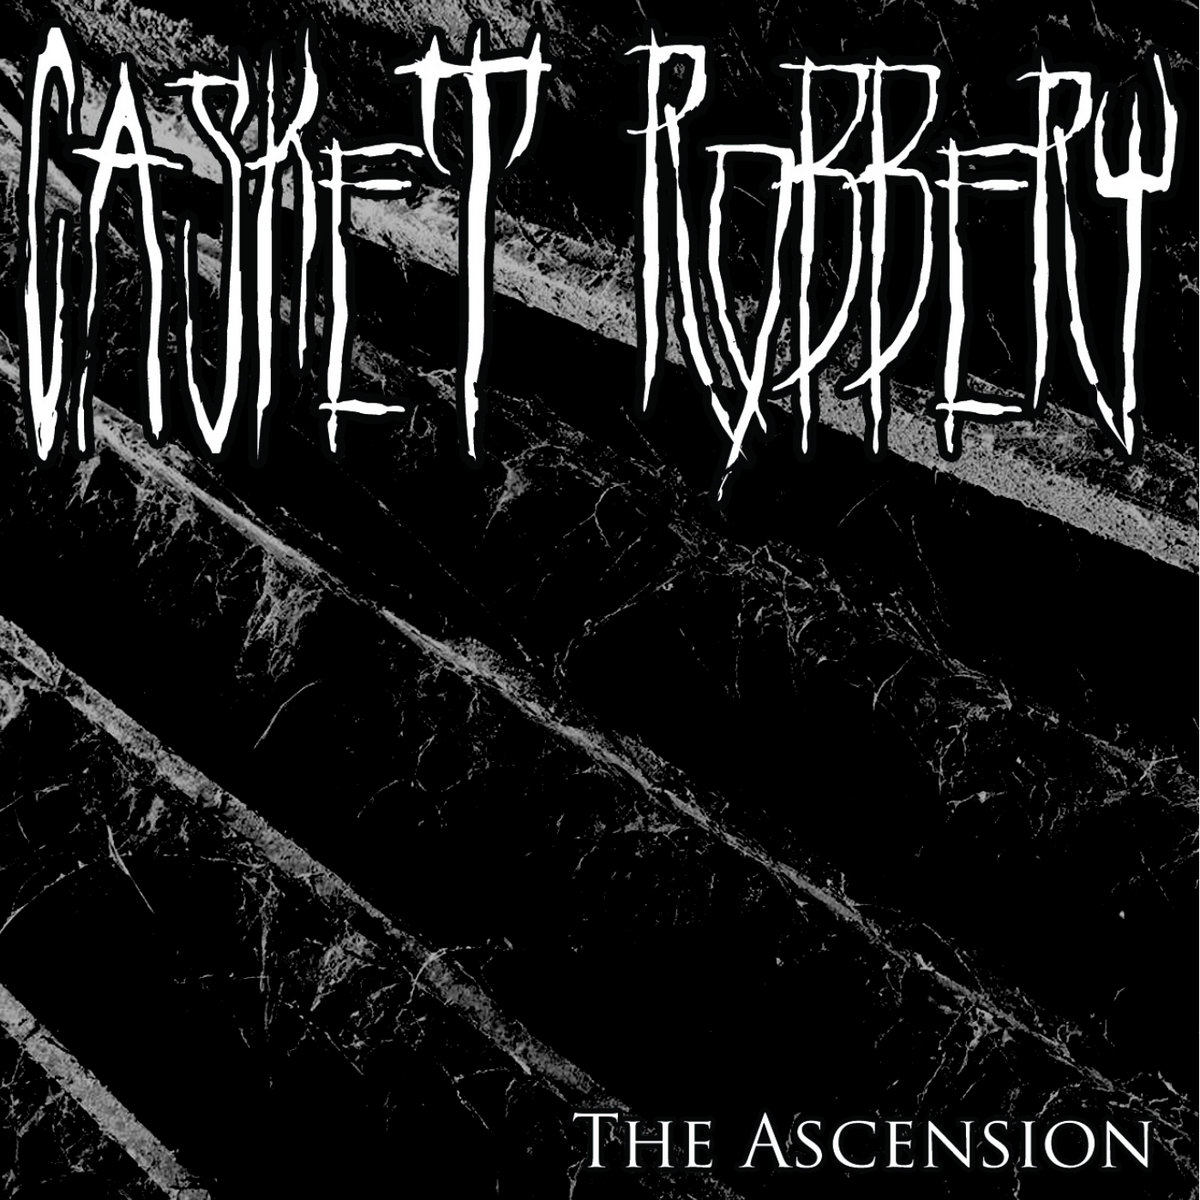 CASKET ROBBERY LIVE ON ANCIENT VISIONZ THIS SUNDAY!